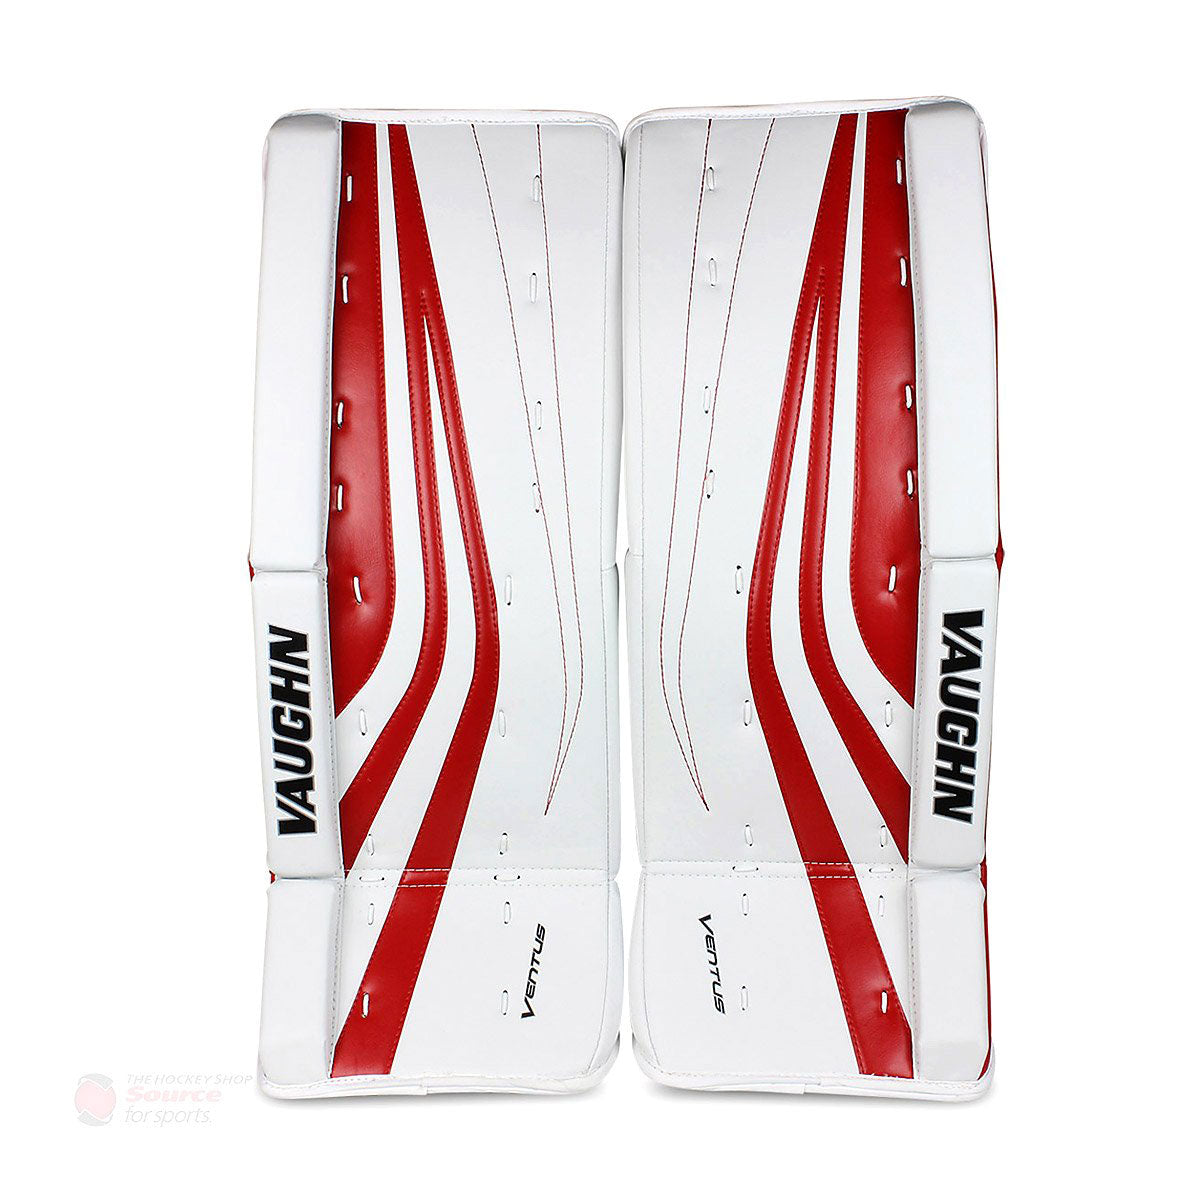 ba8e8e78a31 Vaughn Ventus SLR Youth Leg Pads – The Hockey Shop Source For Sports